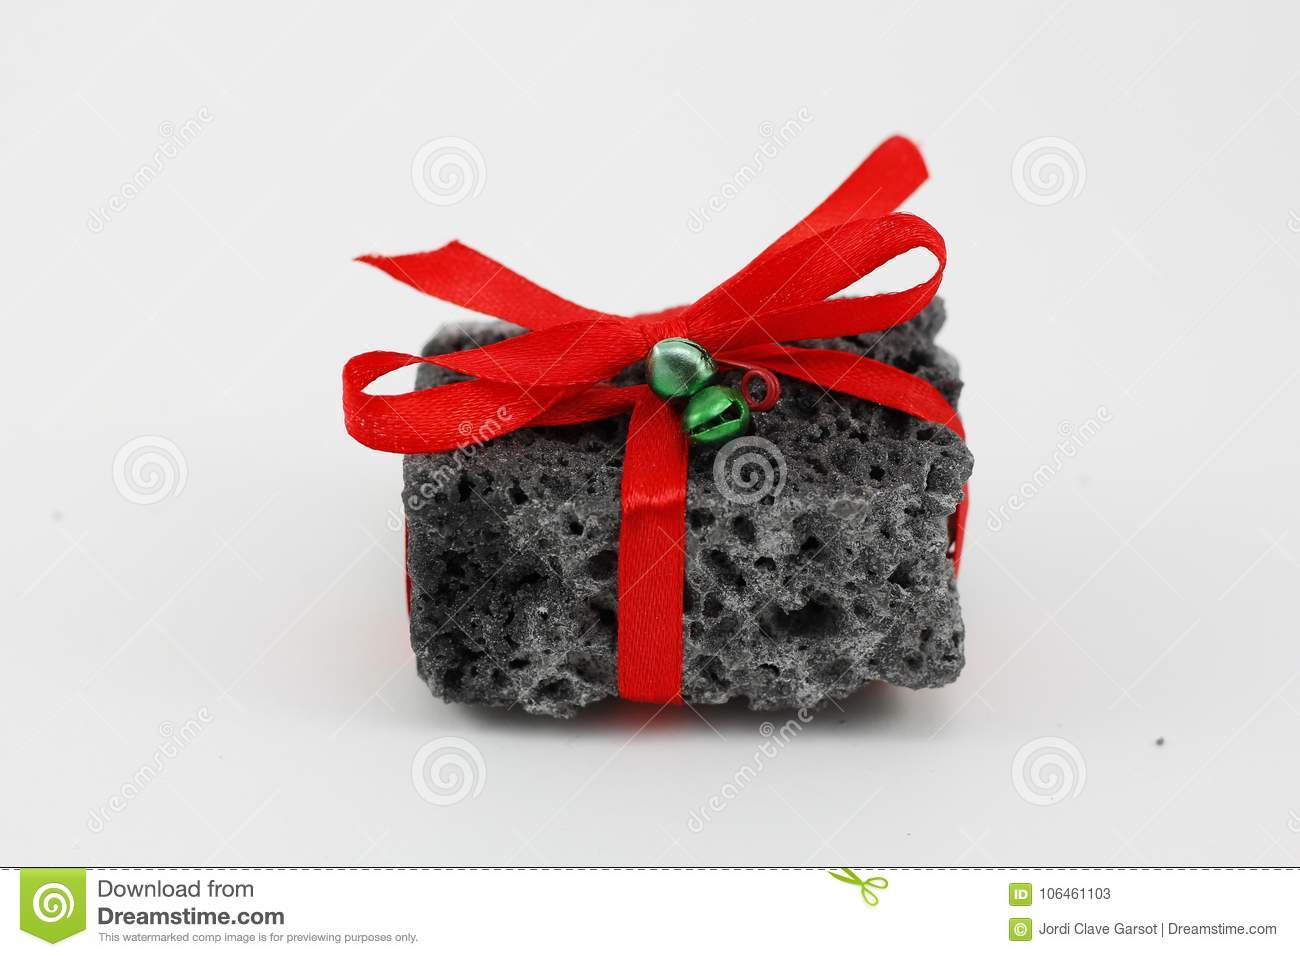 Christmas Coal In A White Background Stock Image - Image of sugar ...